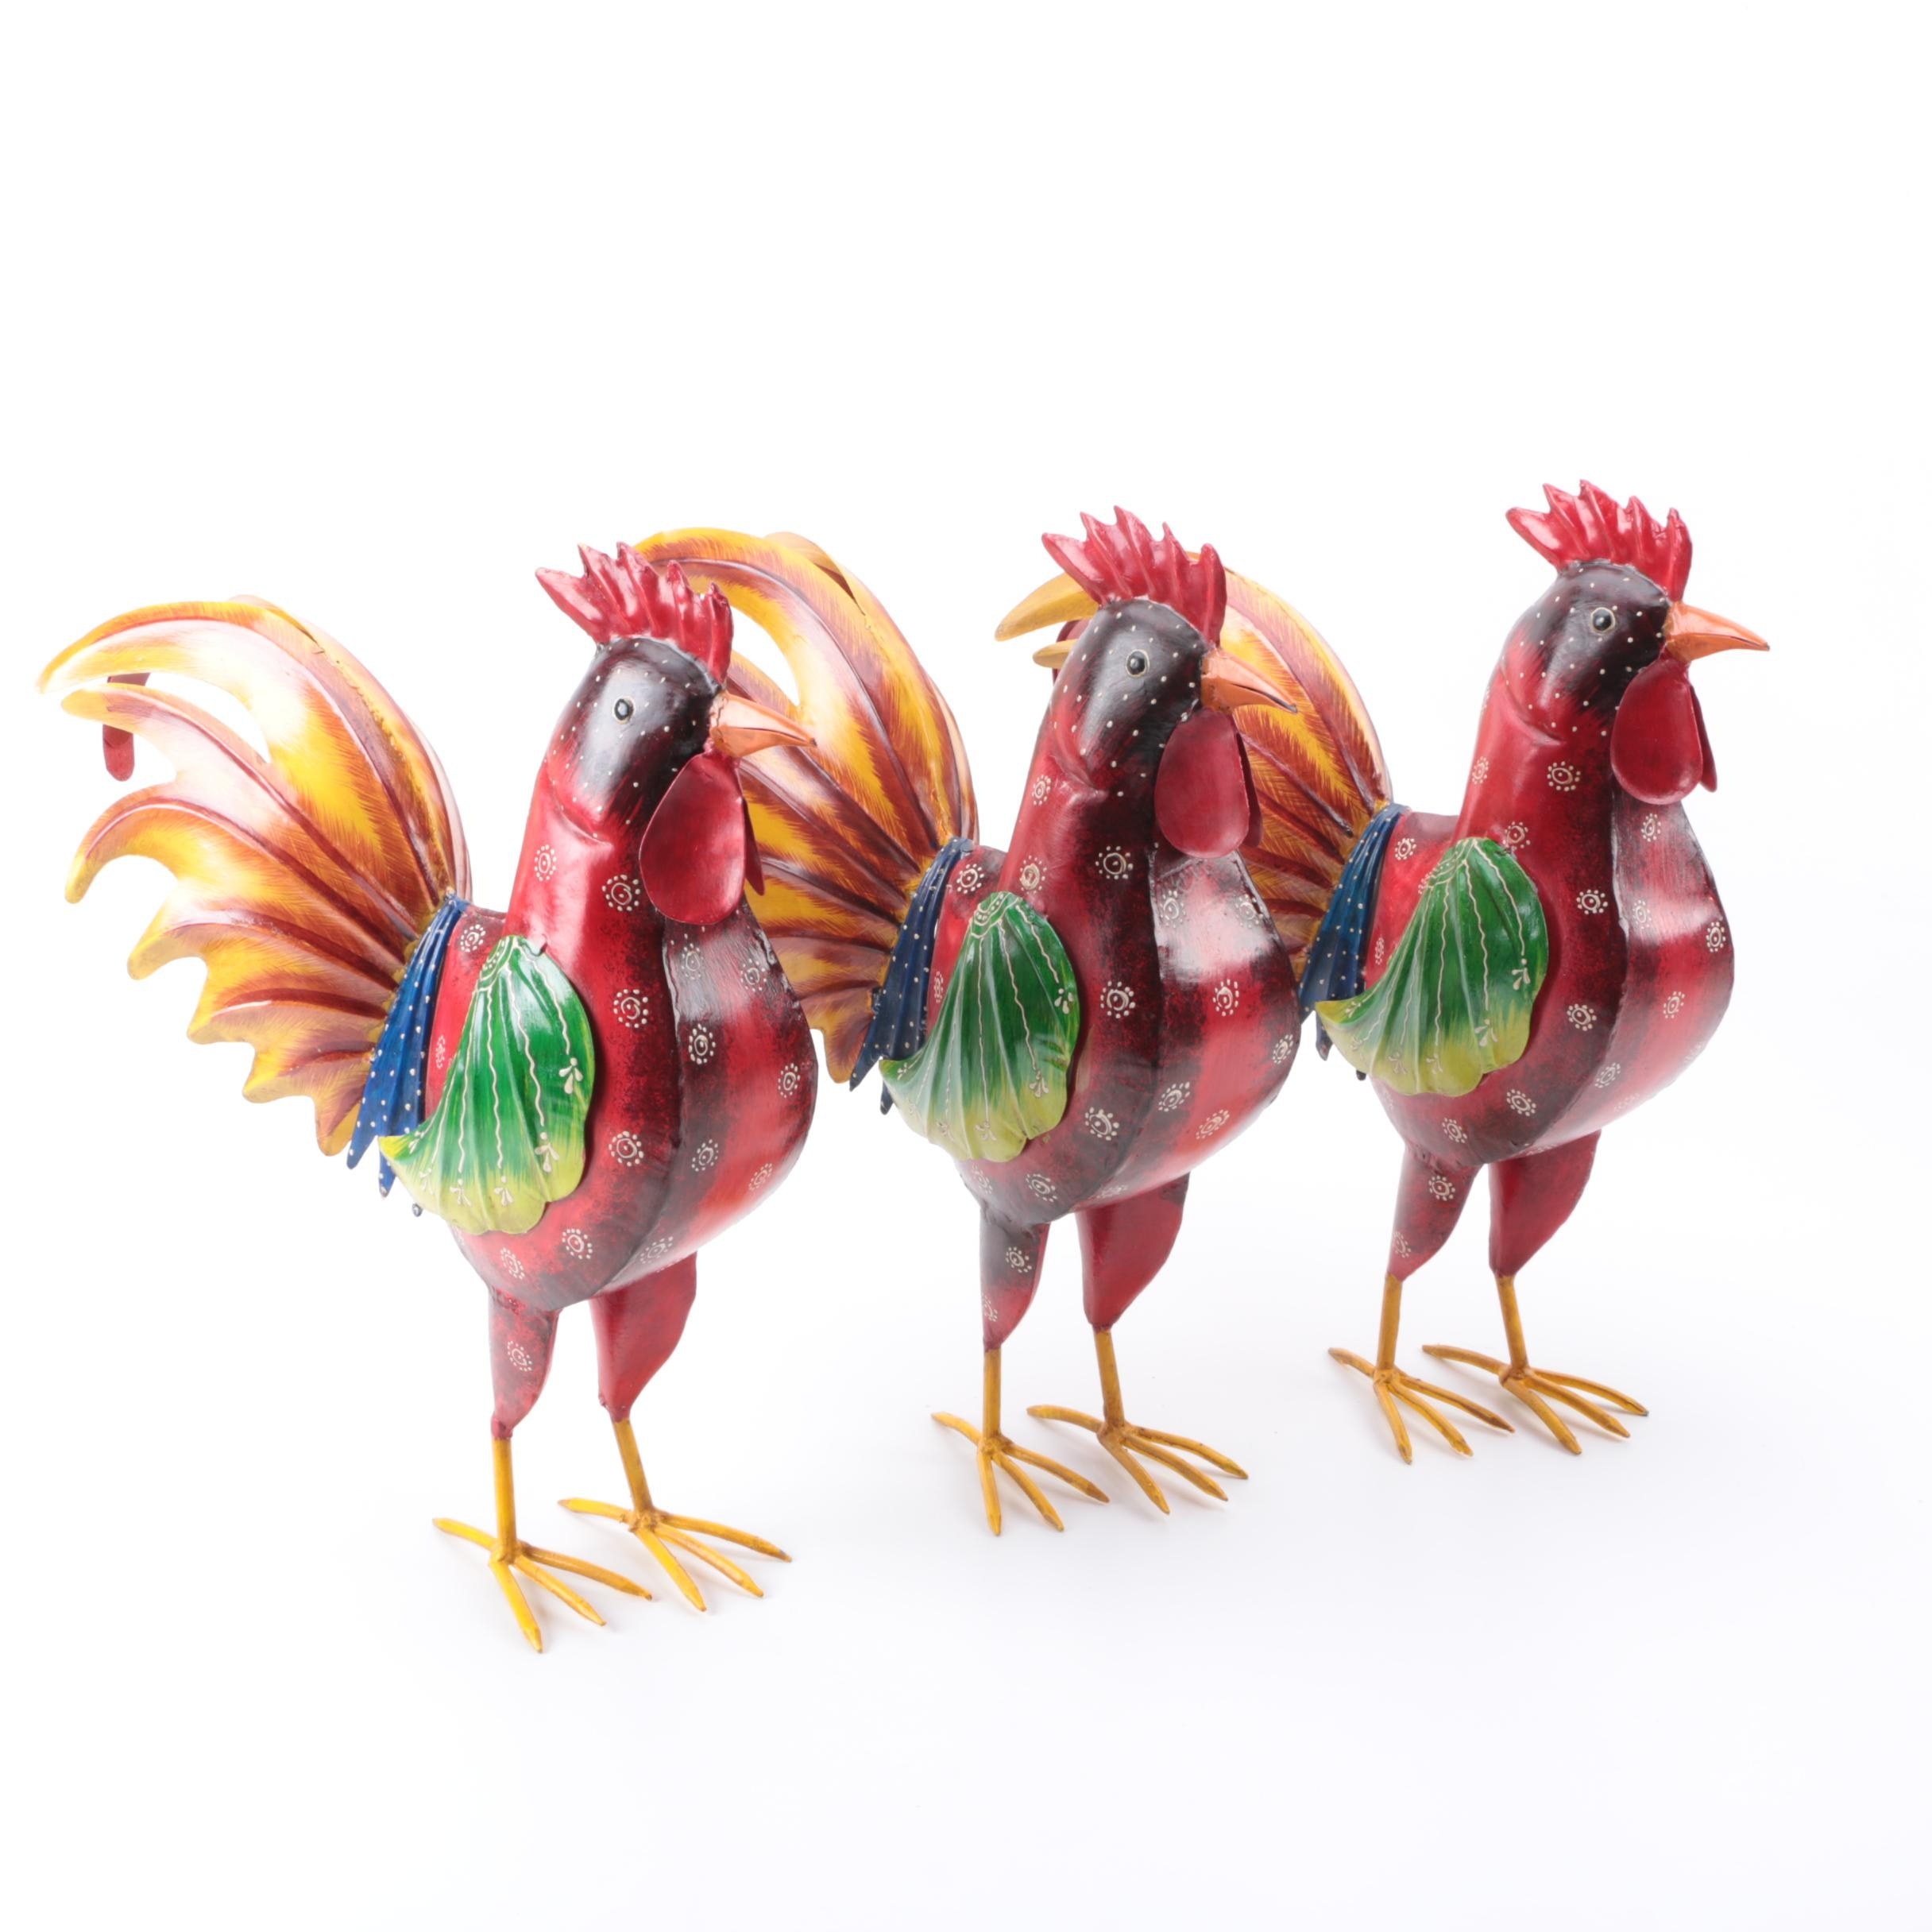 Painted Metal Rooster Decor